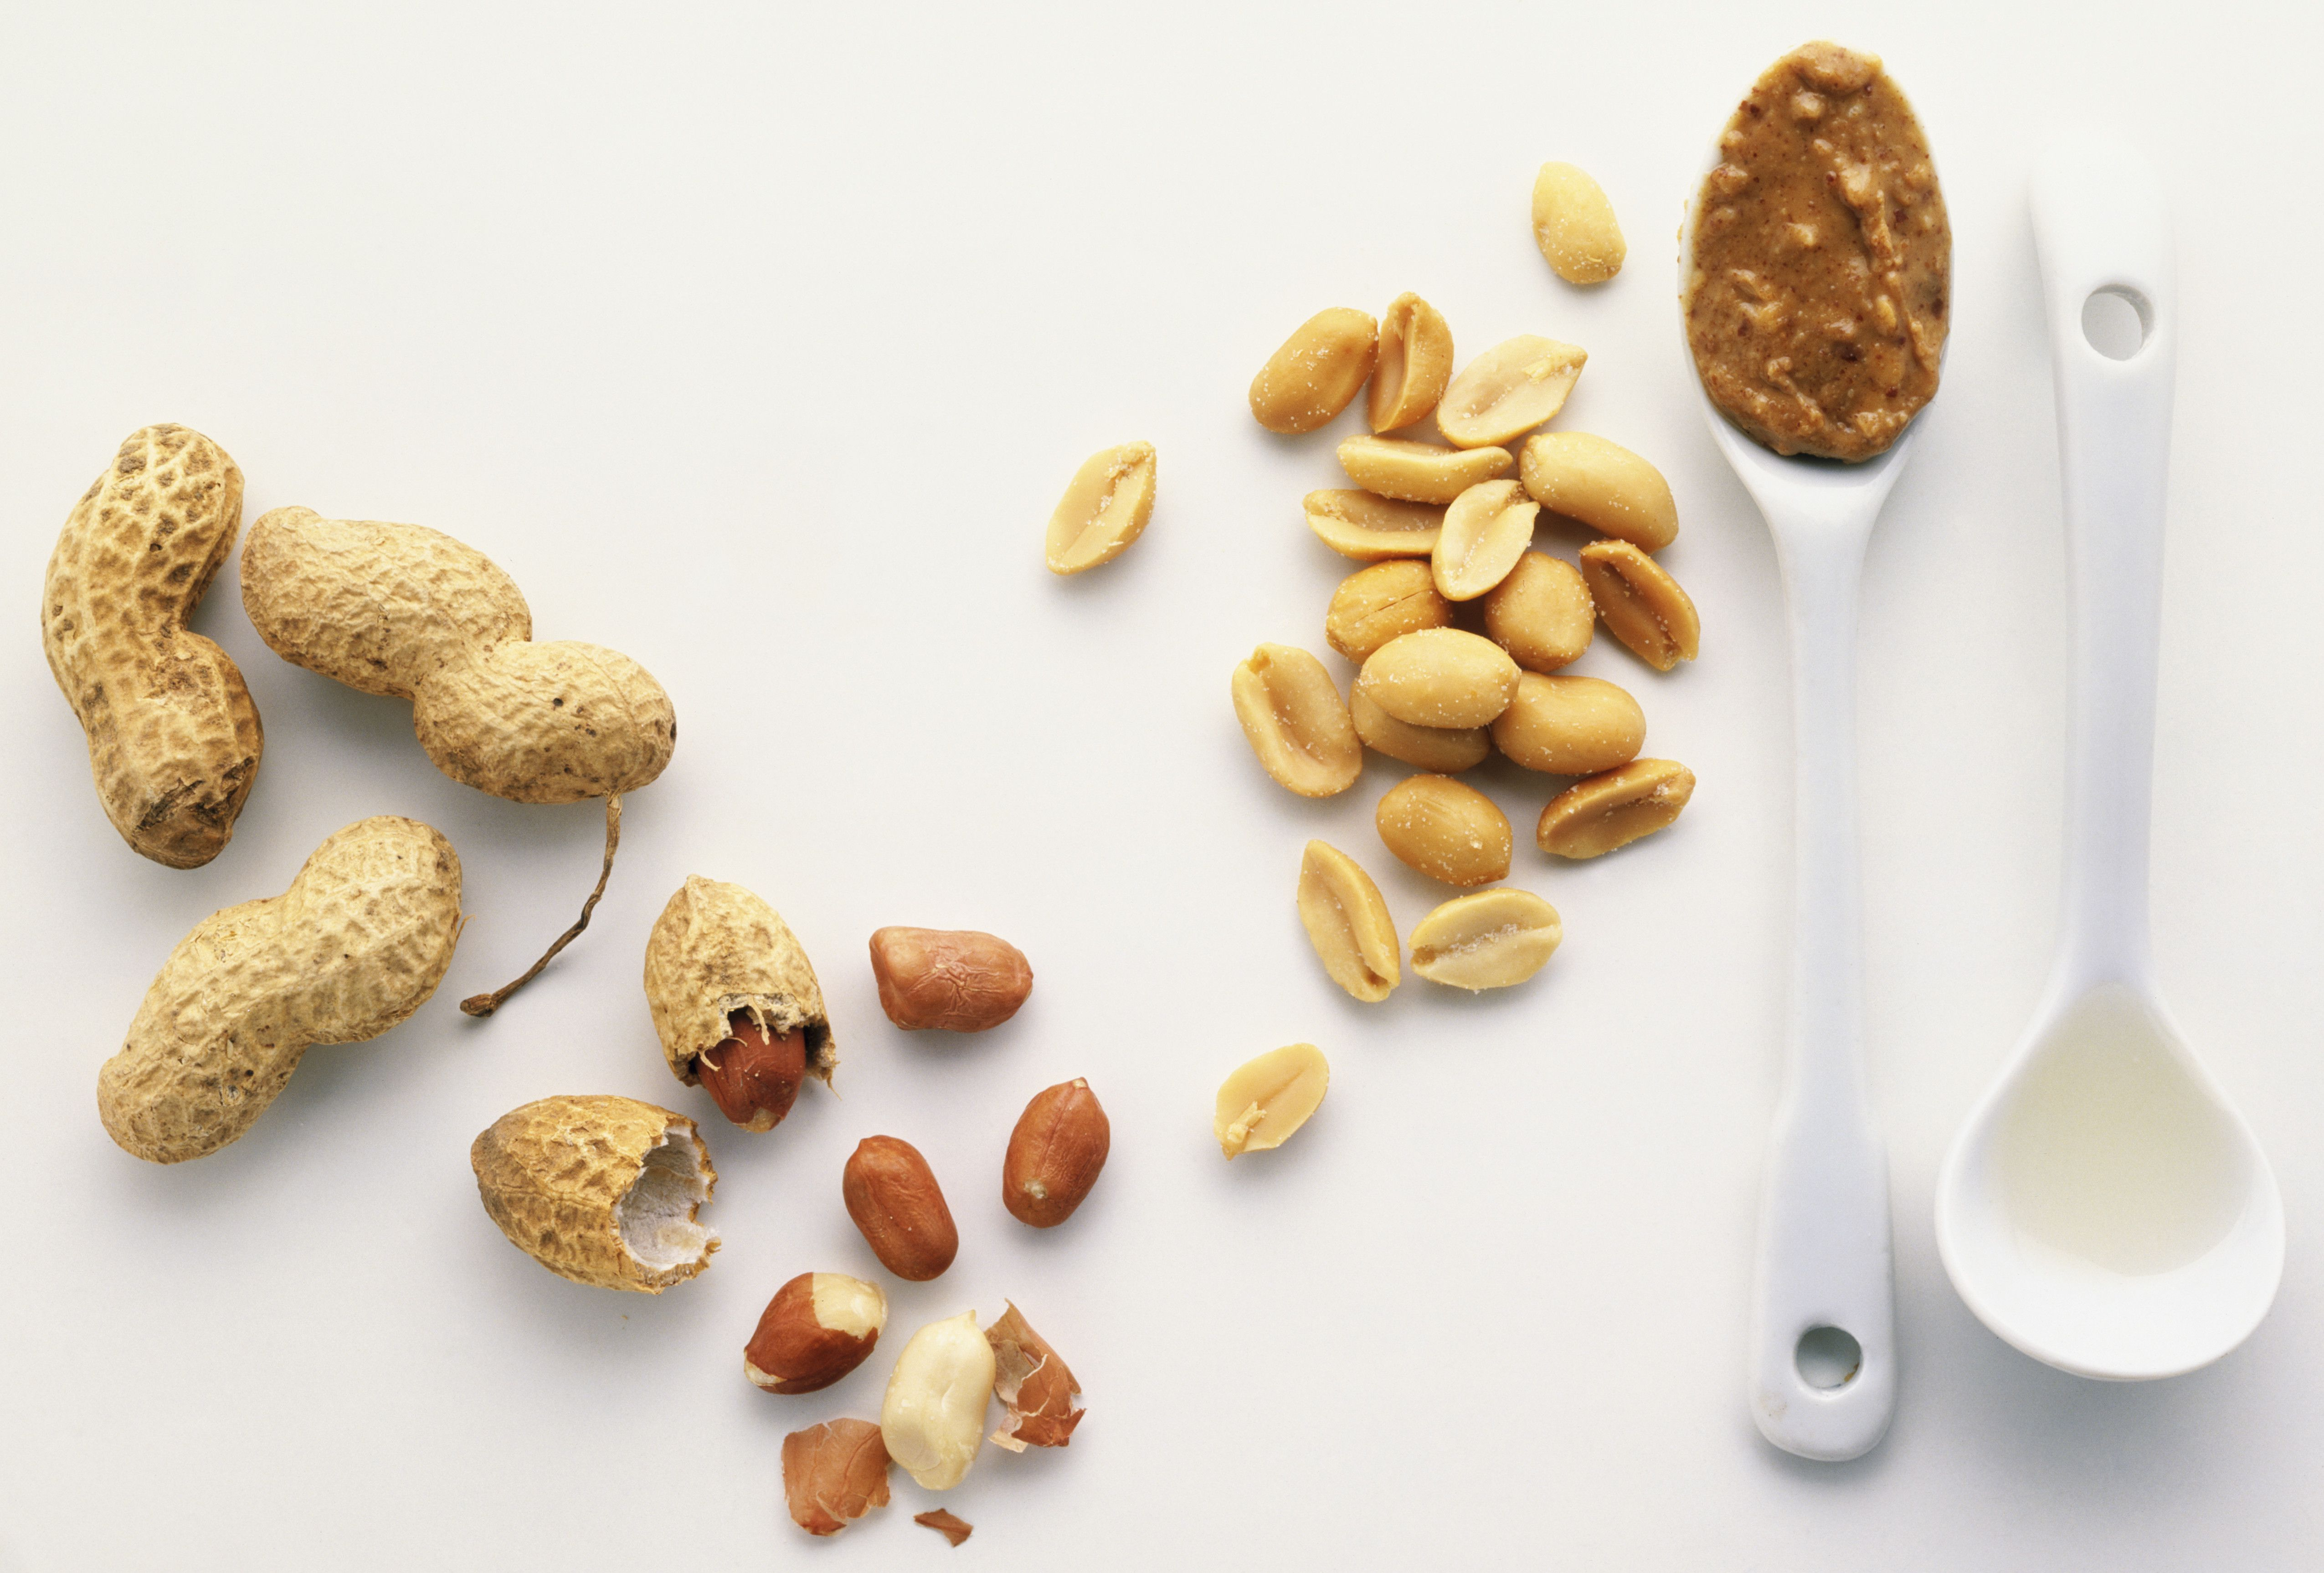 What Is Powdered Peanut Butter?